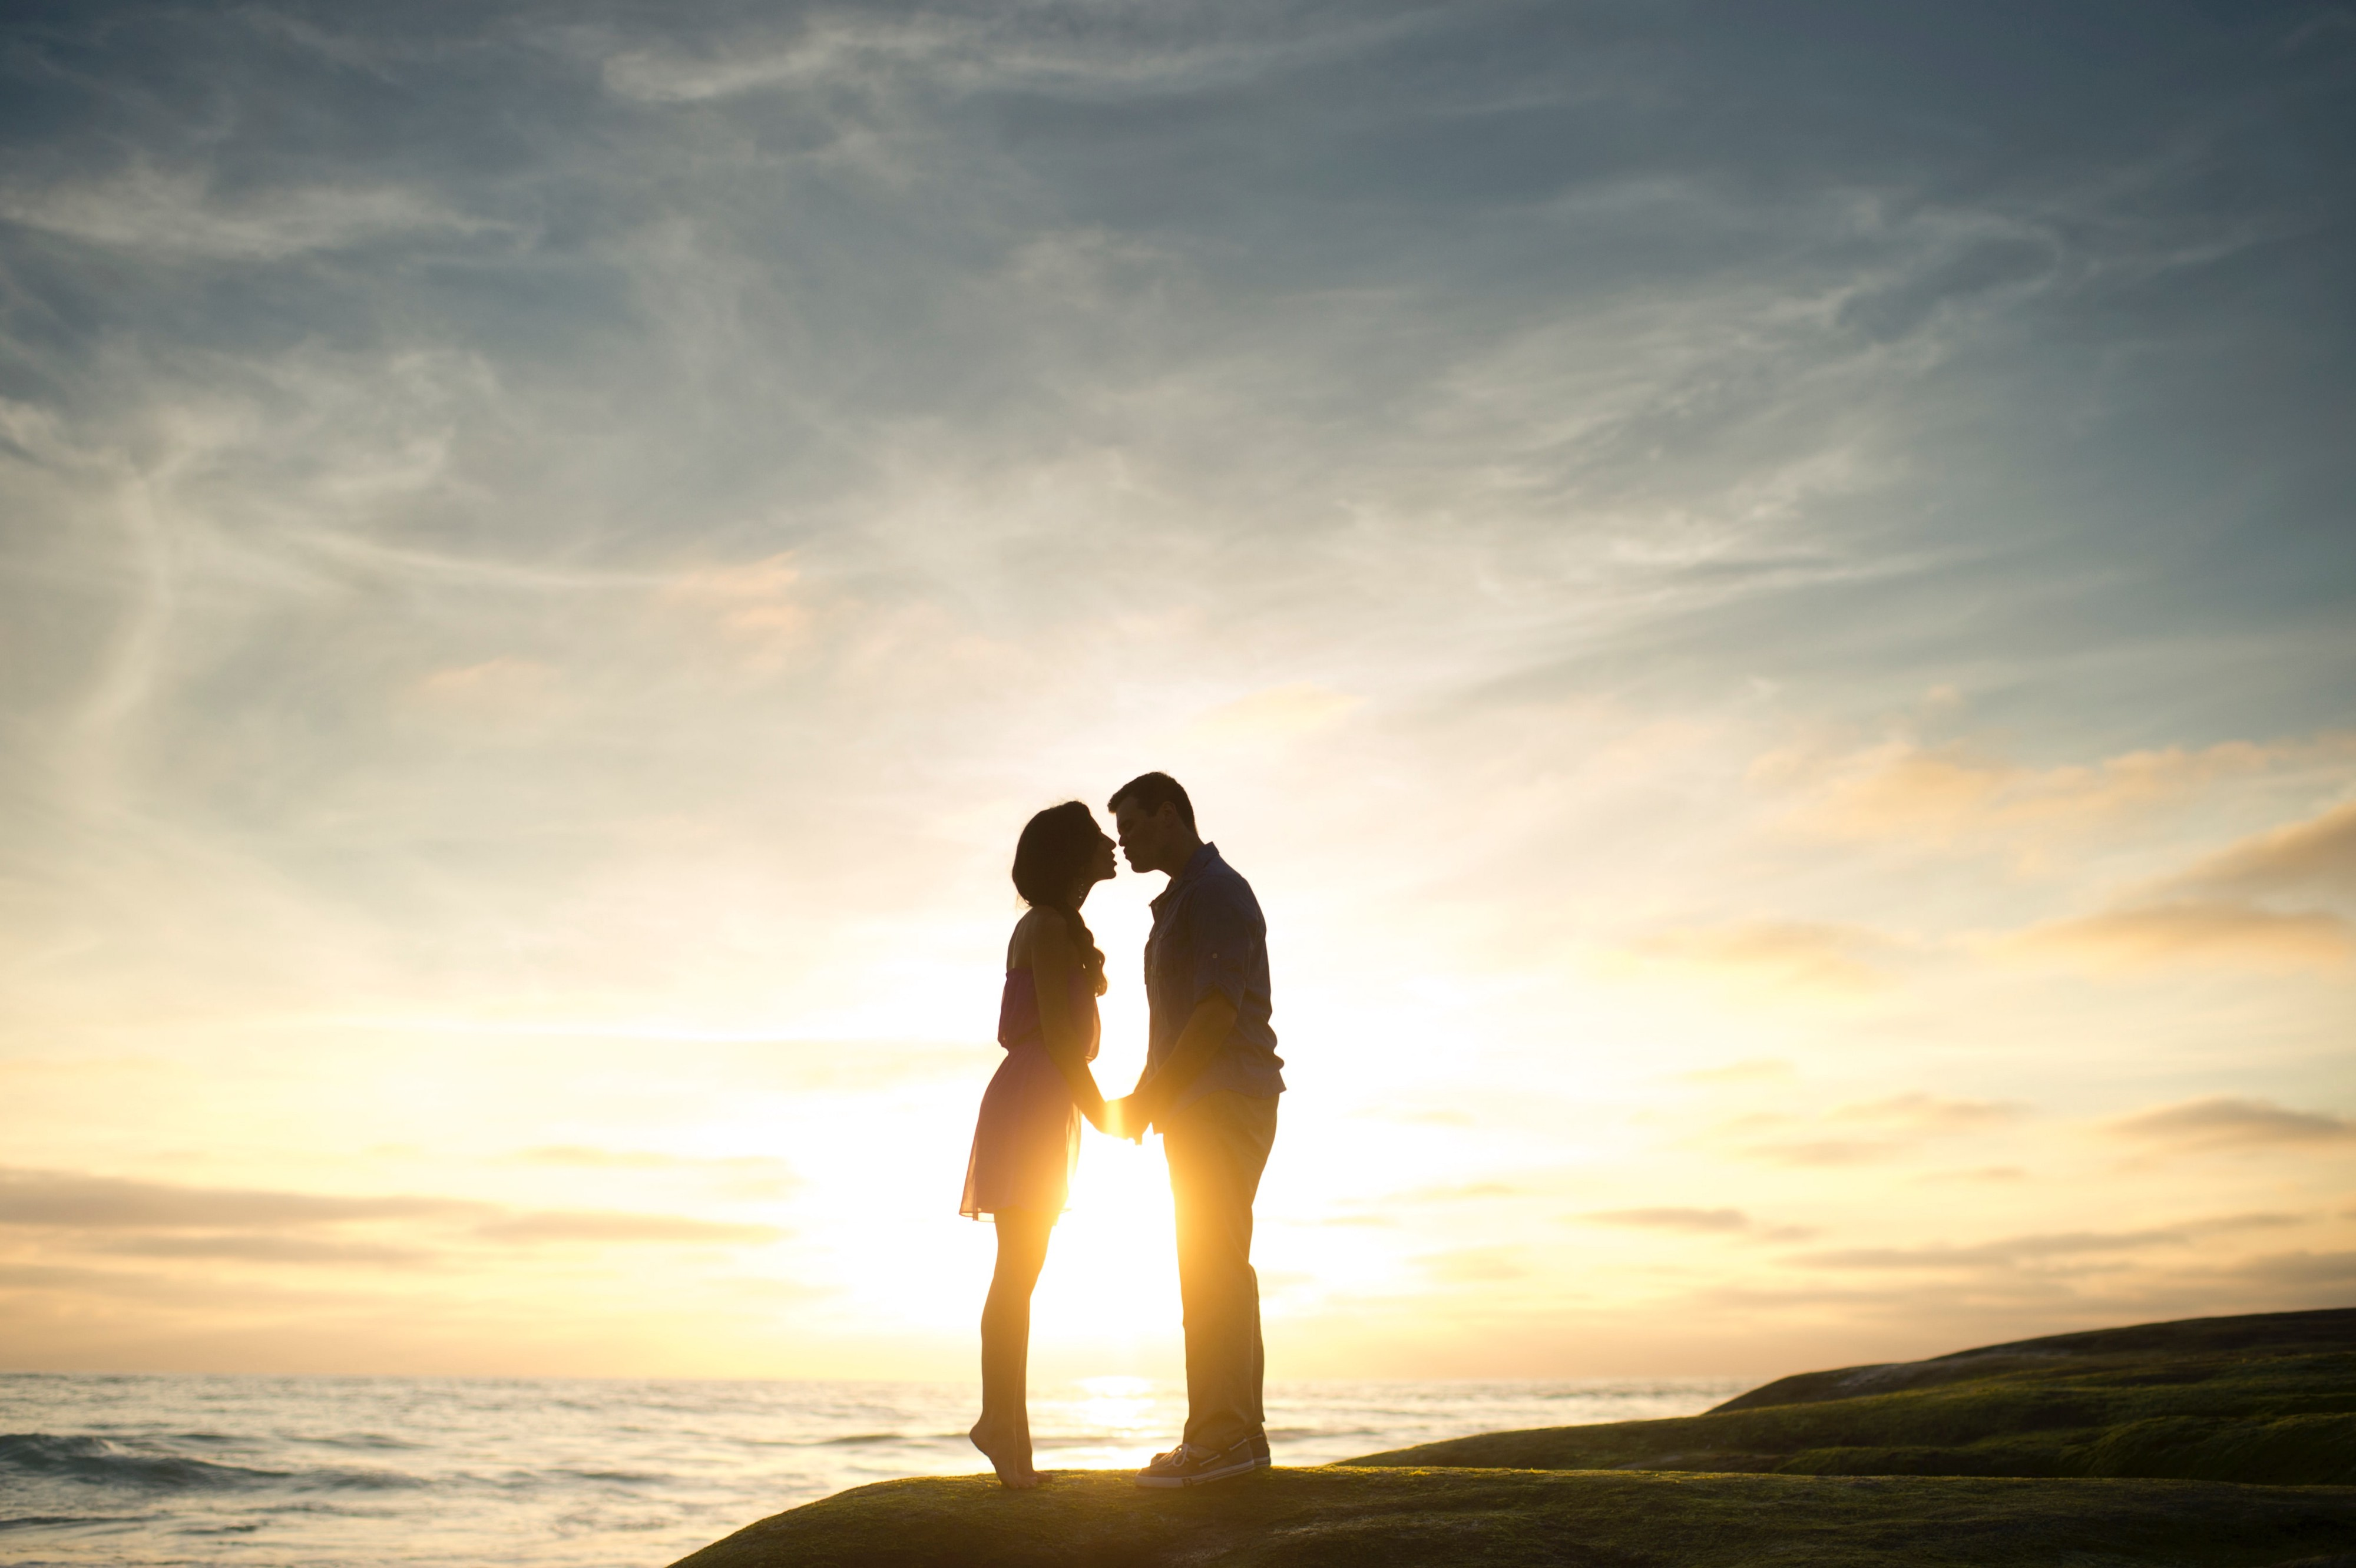 silhouette of man and woman facing each other holding hands on hill with sunset and ocean in background